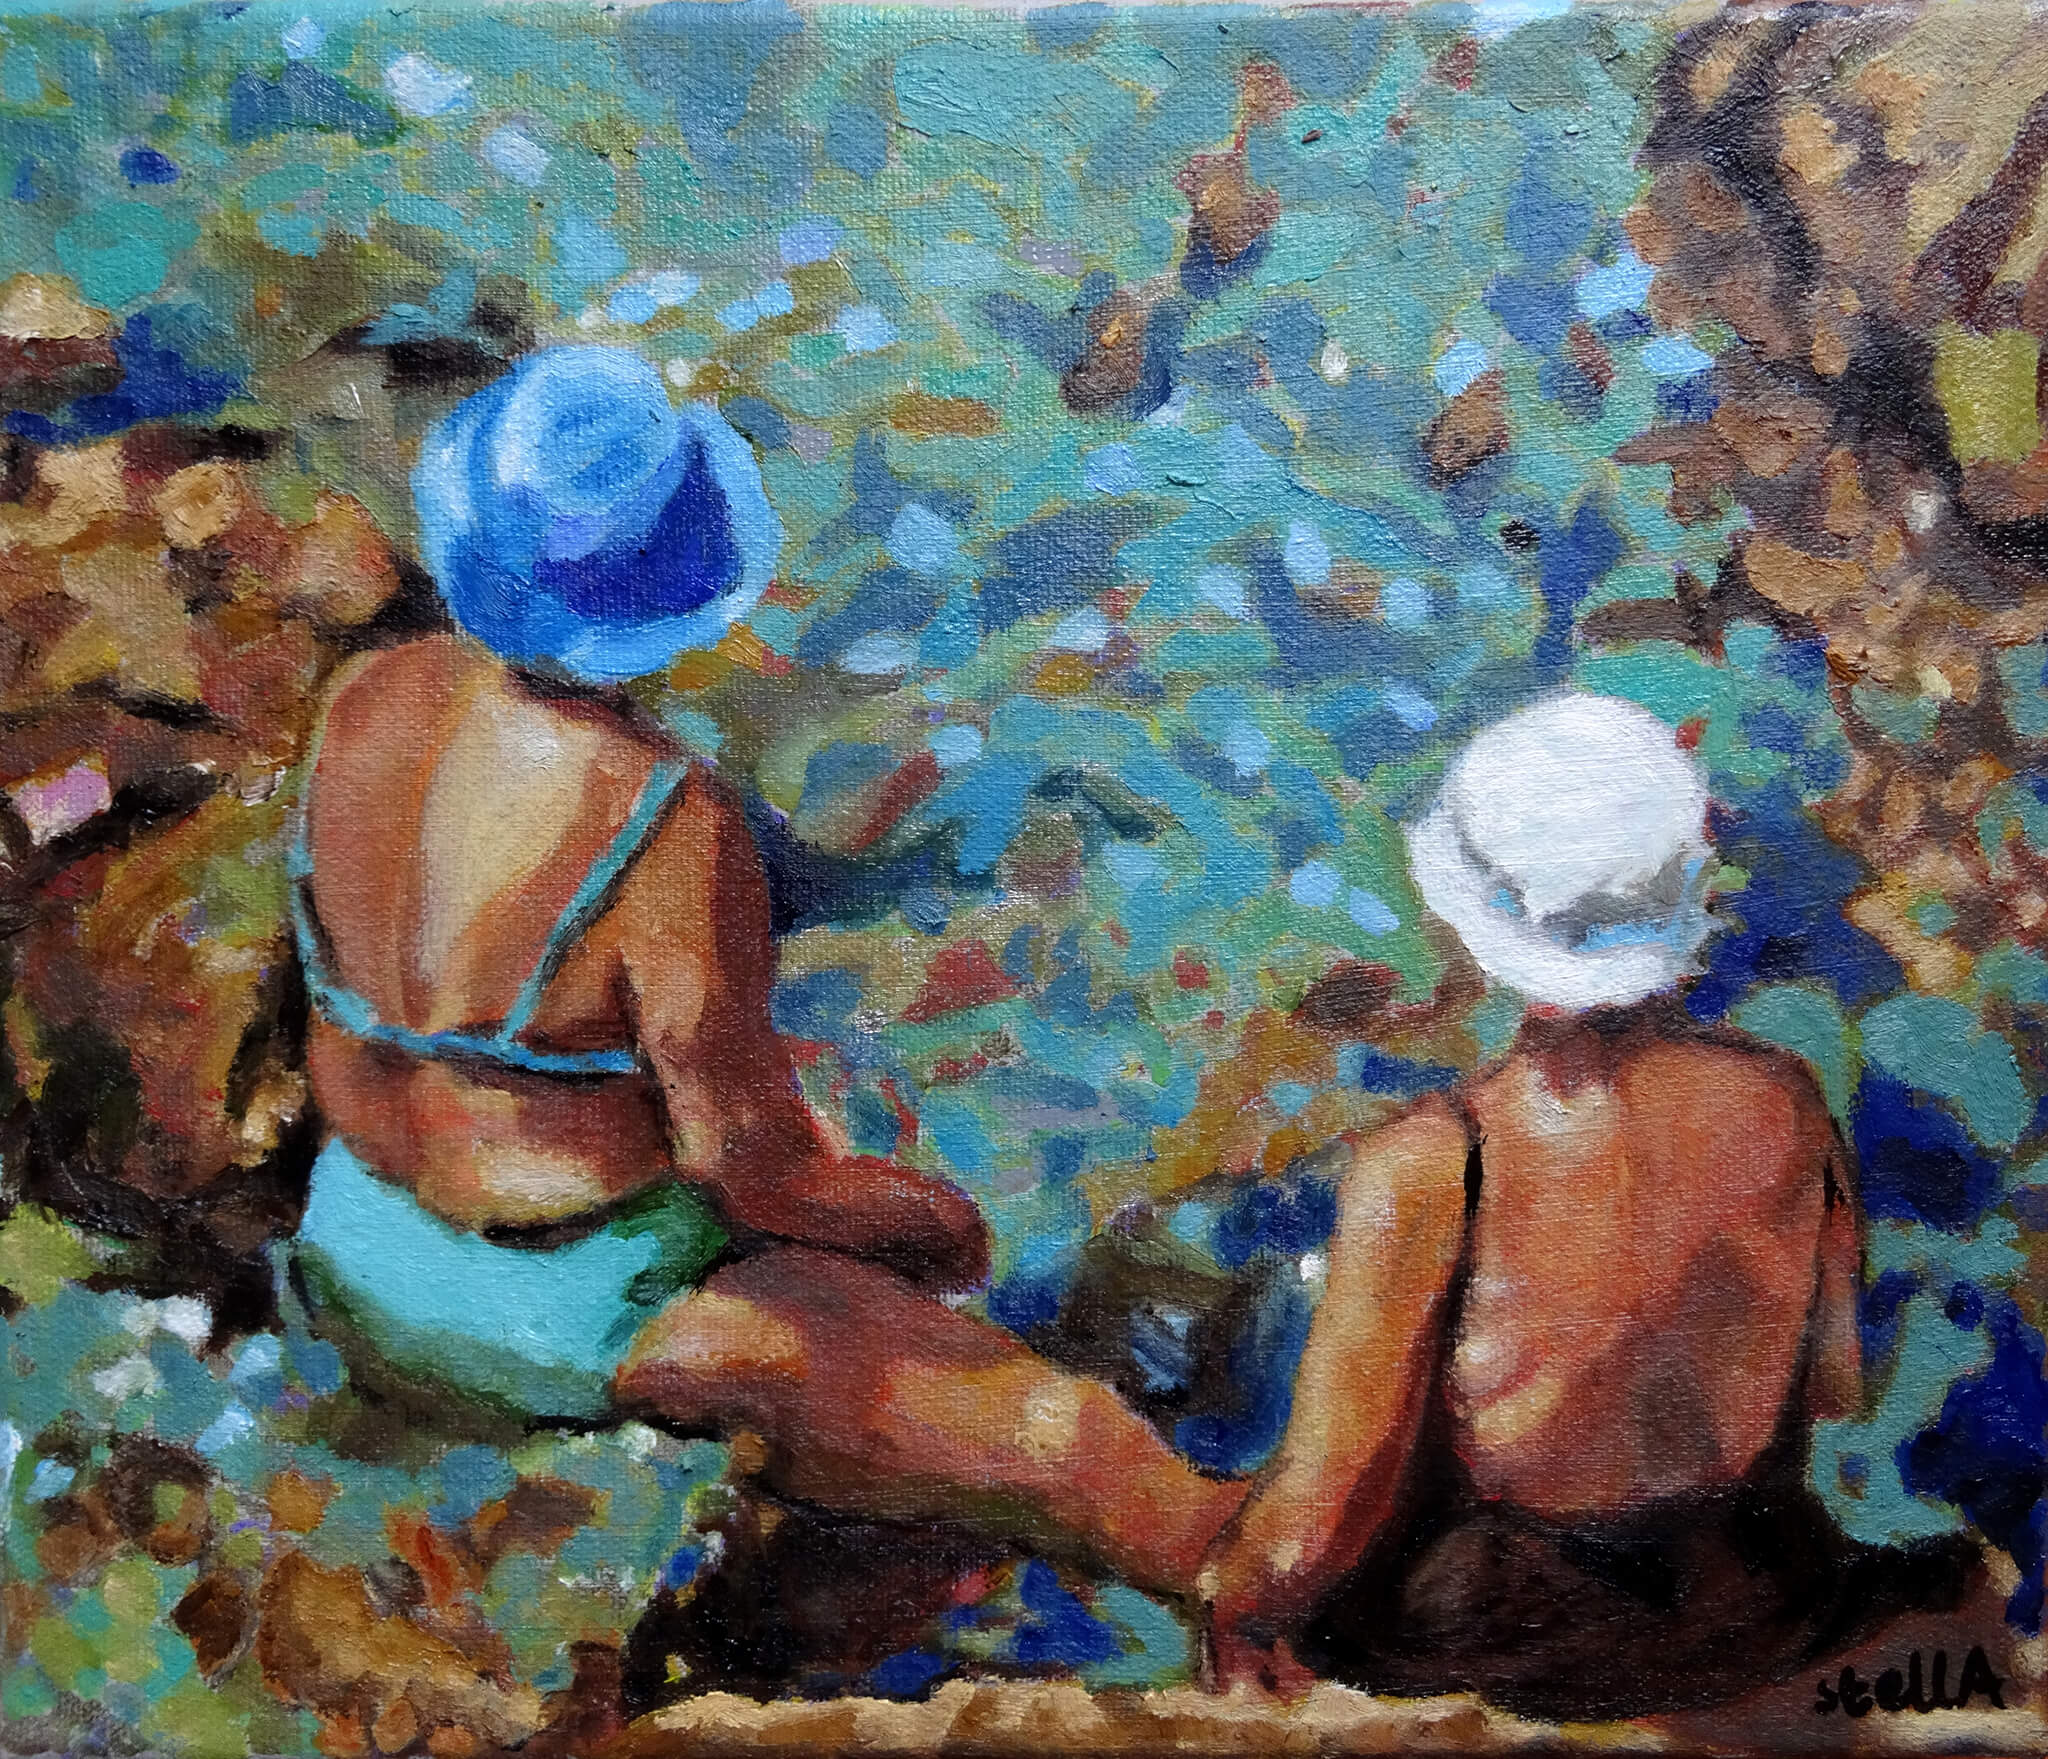 Vecchie amiche oil on canvas artworks in Ischia bather series by Stella Tooth.